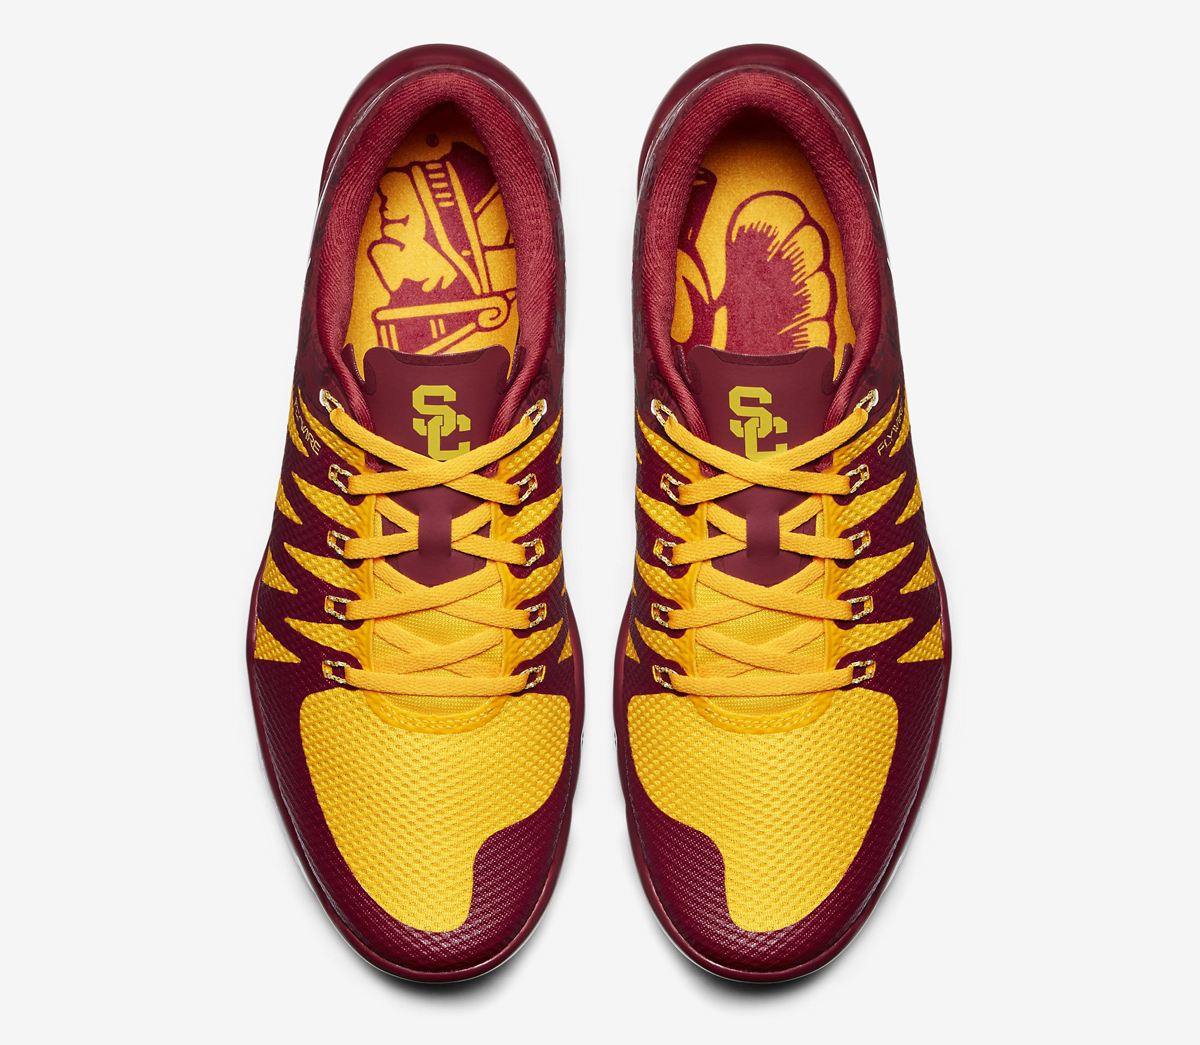 699cfbb50ef6 ... Nike Is Releasing a Ton of College-Themed Sneakers Tomorrow Sole  Collector ...